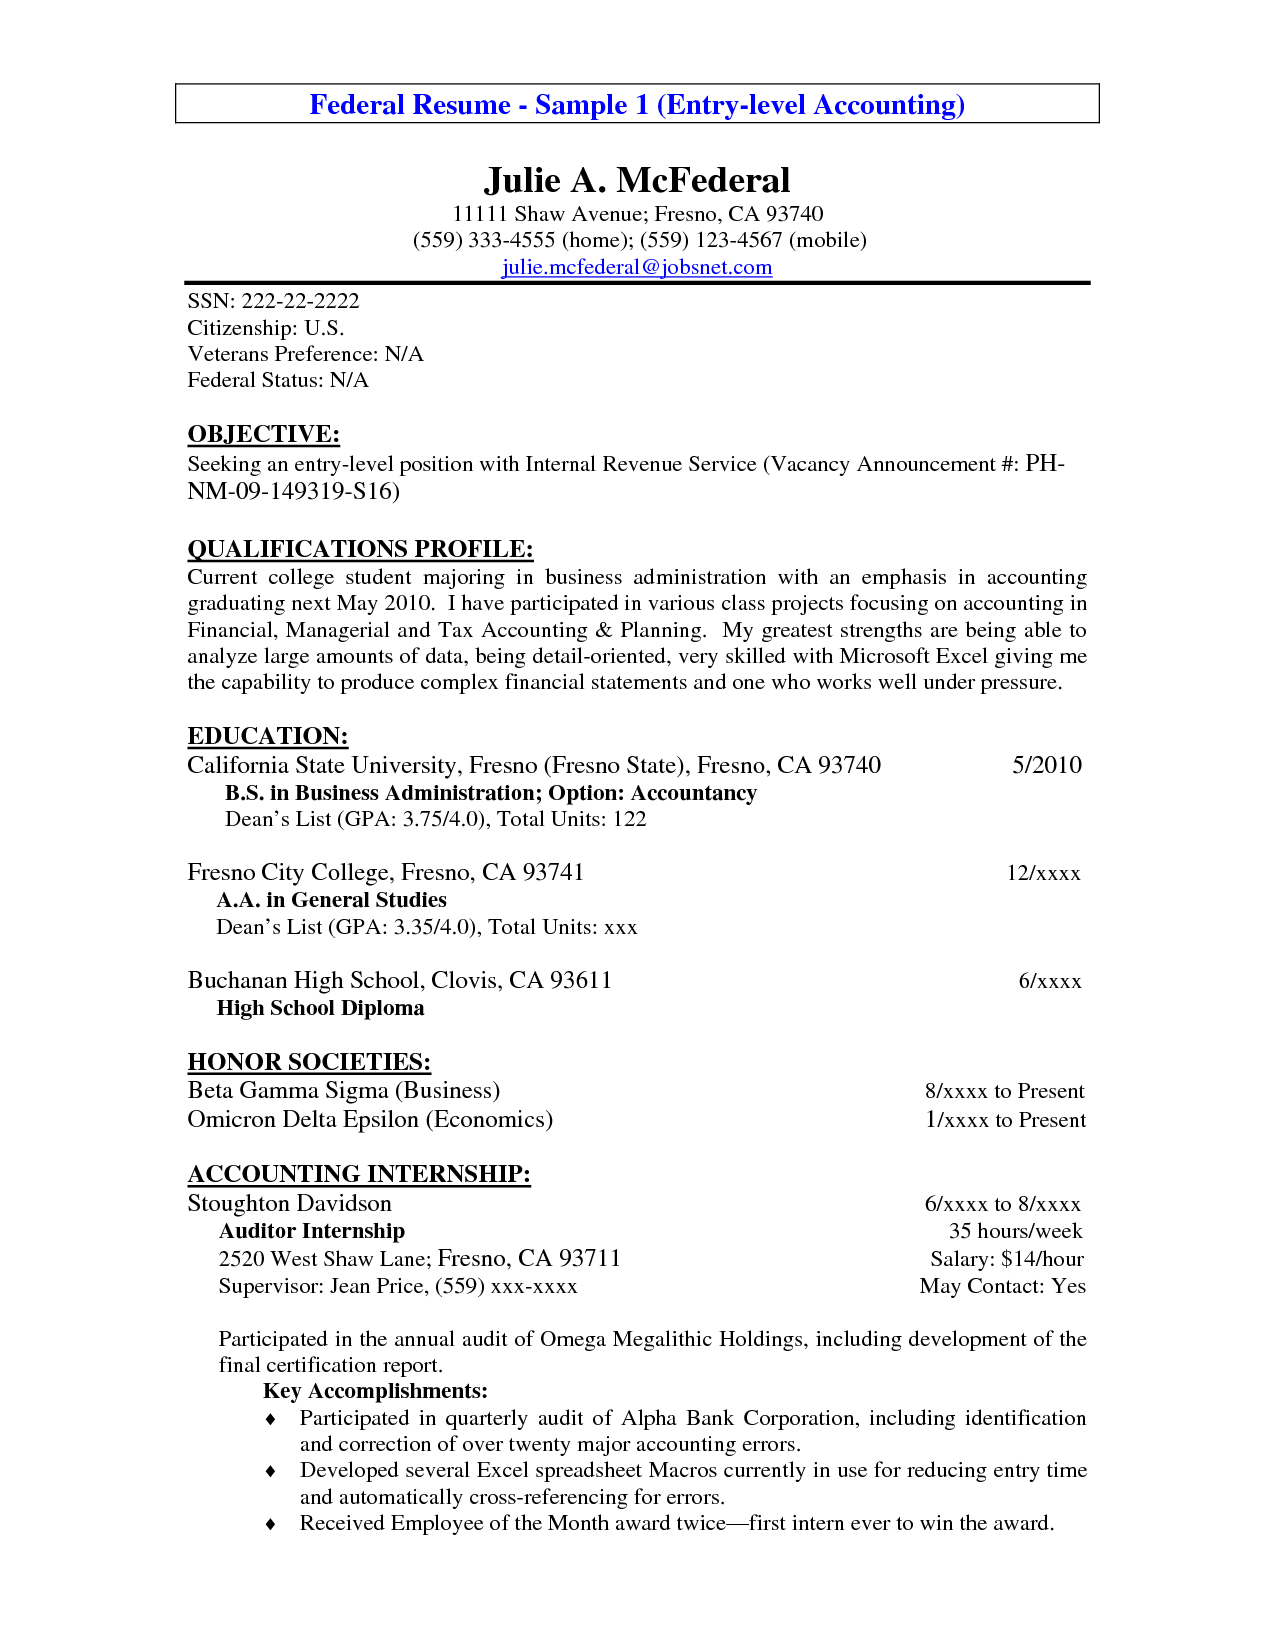 Accounting Internship Resume Objective Ann Debusschere A_Debusschere On Pinterest